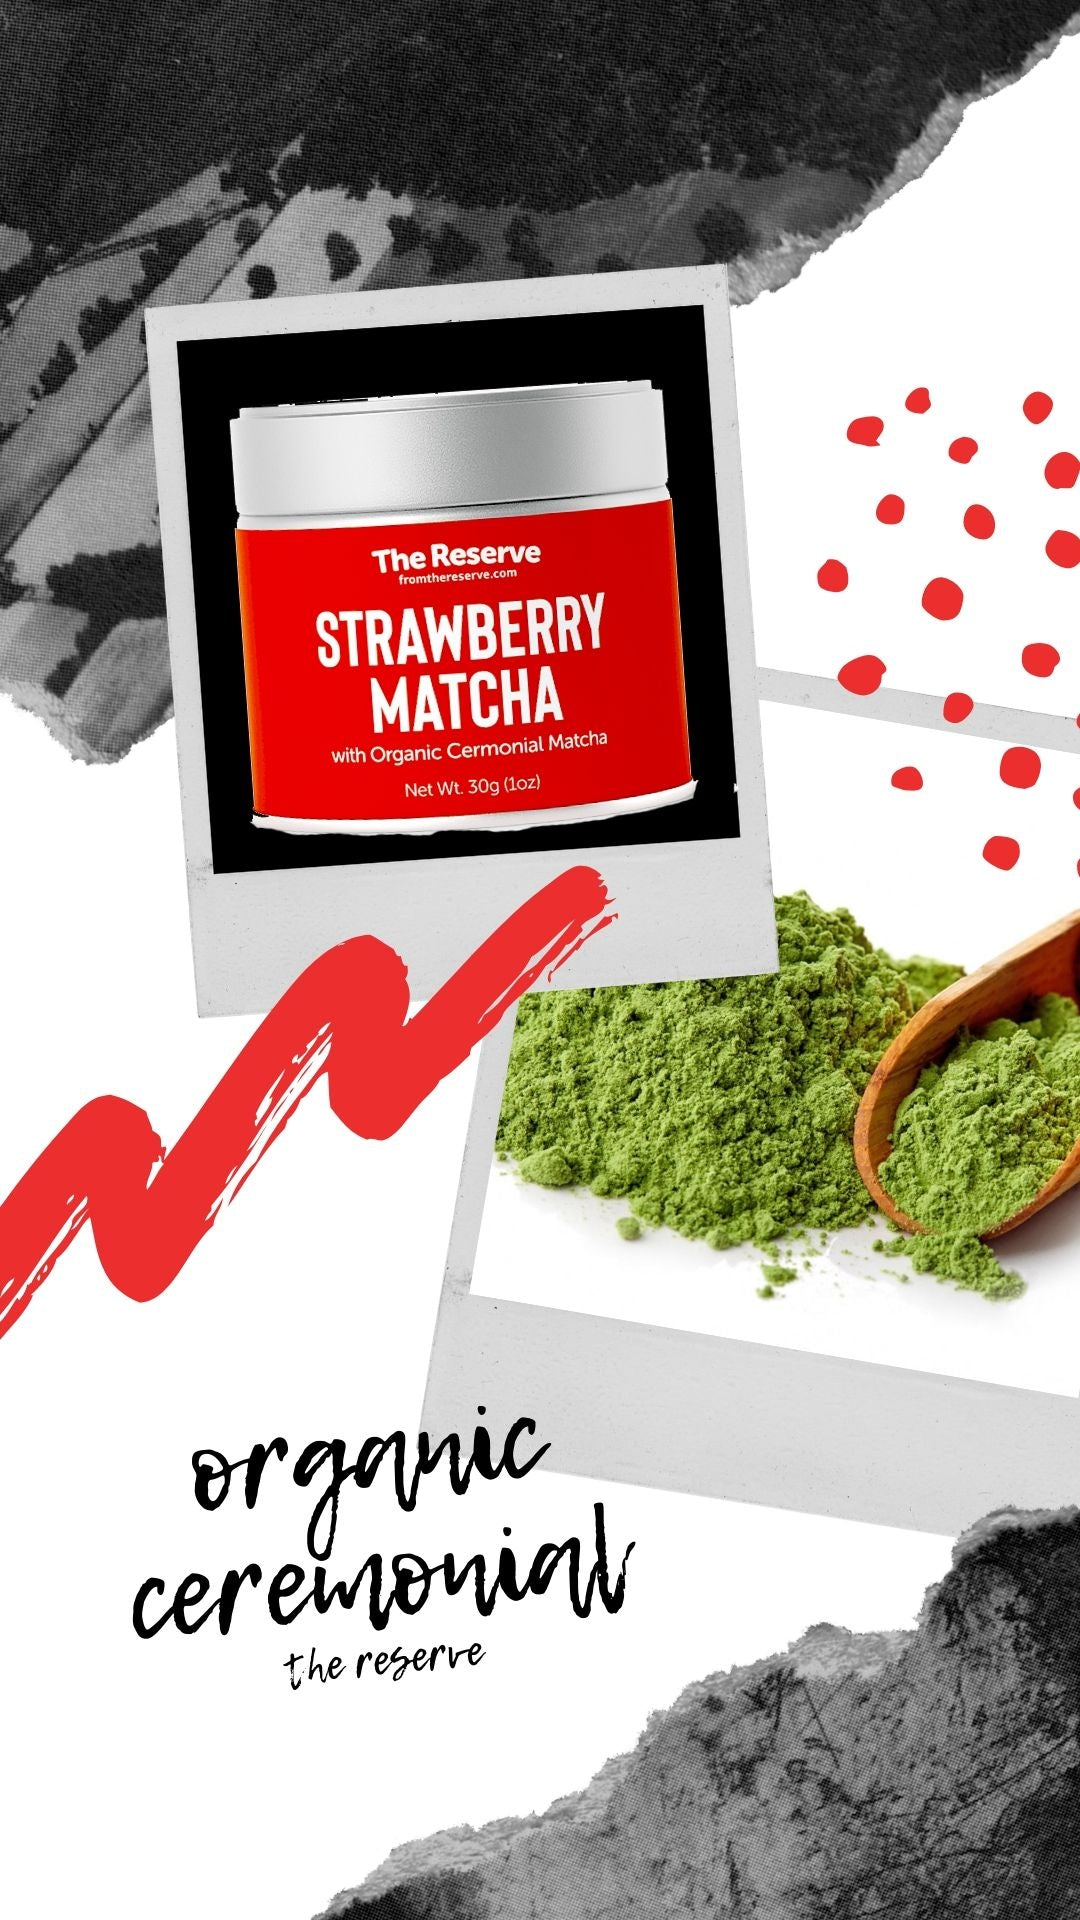 Organic Strawberry Matcha